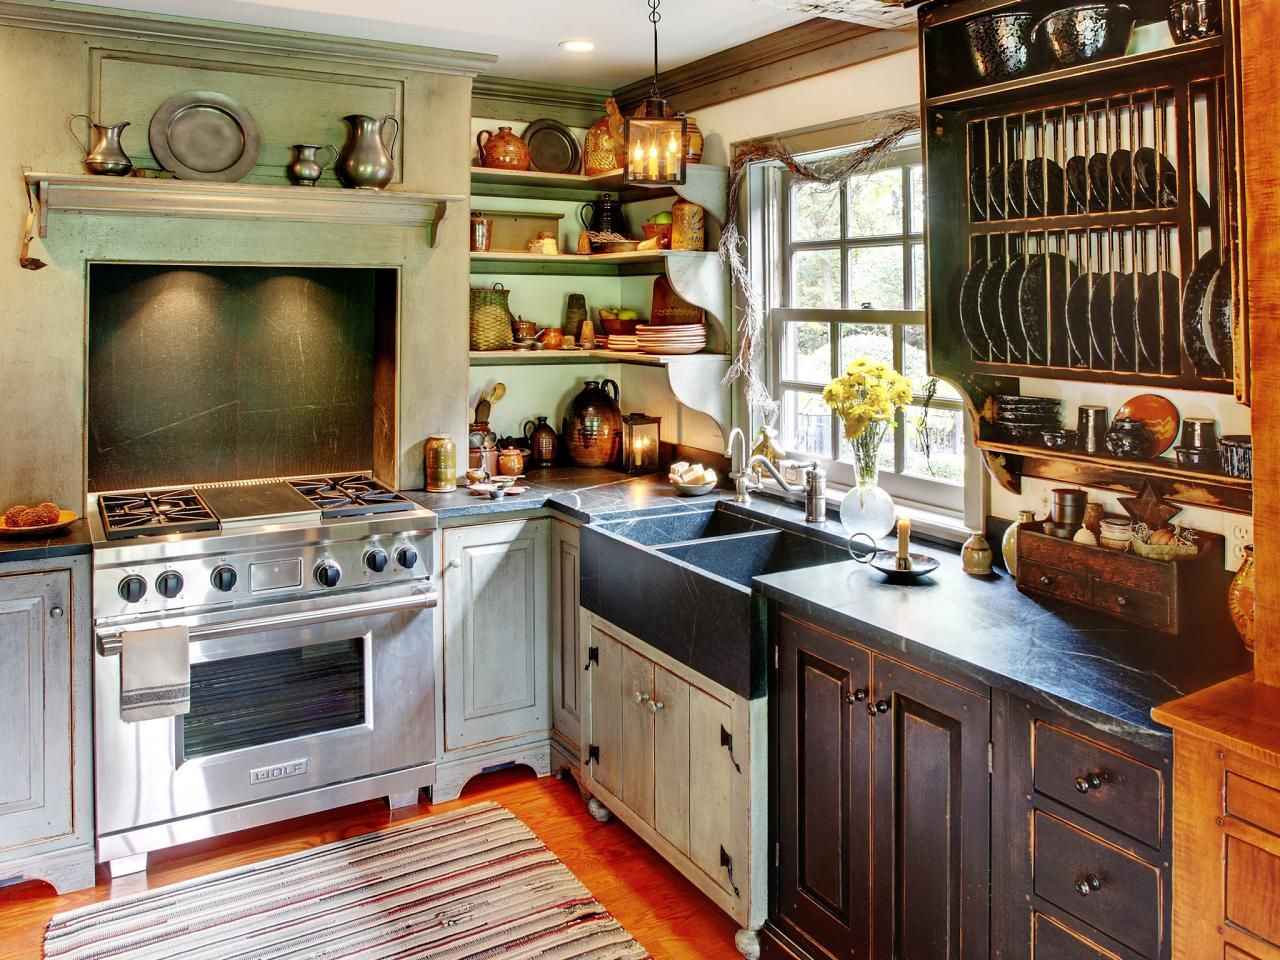 Attrayant HGTV Loves This Bright And Cozy Country Kitchen, Which Features A Mix Of  Recycled Cabinets.